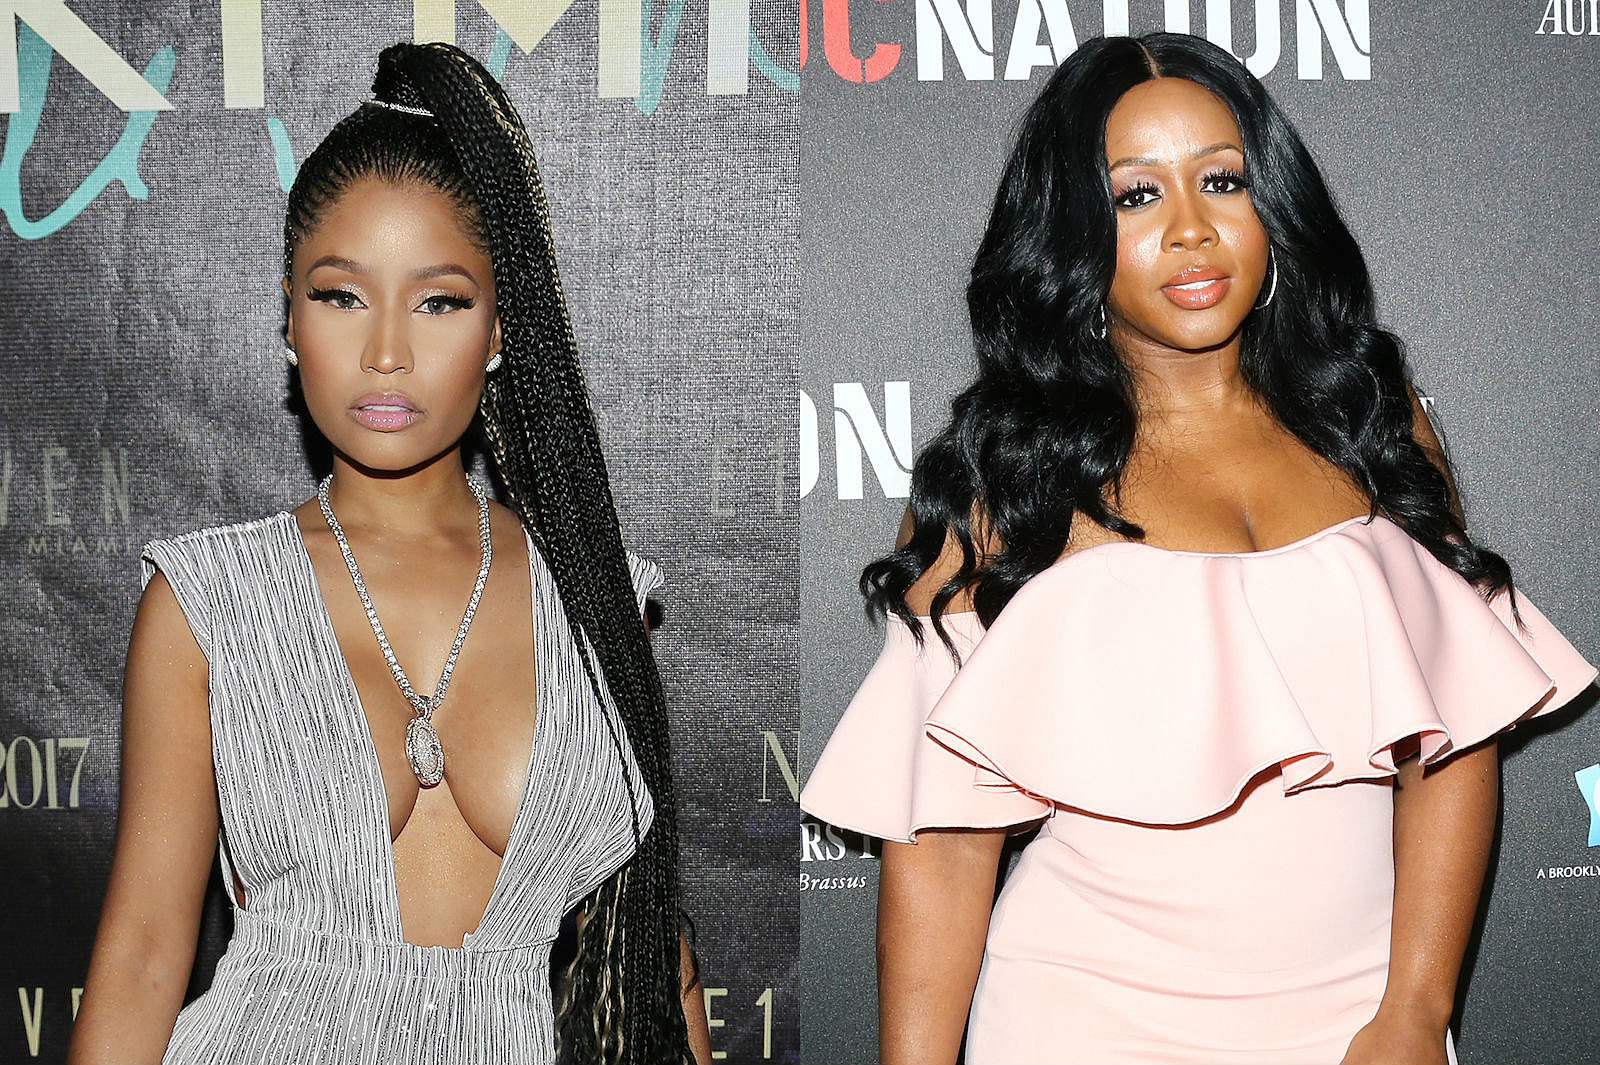 fdfeaf12e2c Here s a Timeline of Remy Ma and Nicki Minaj s Beef - XXL